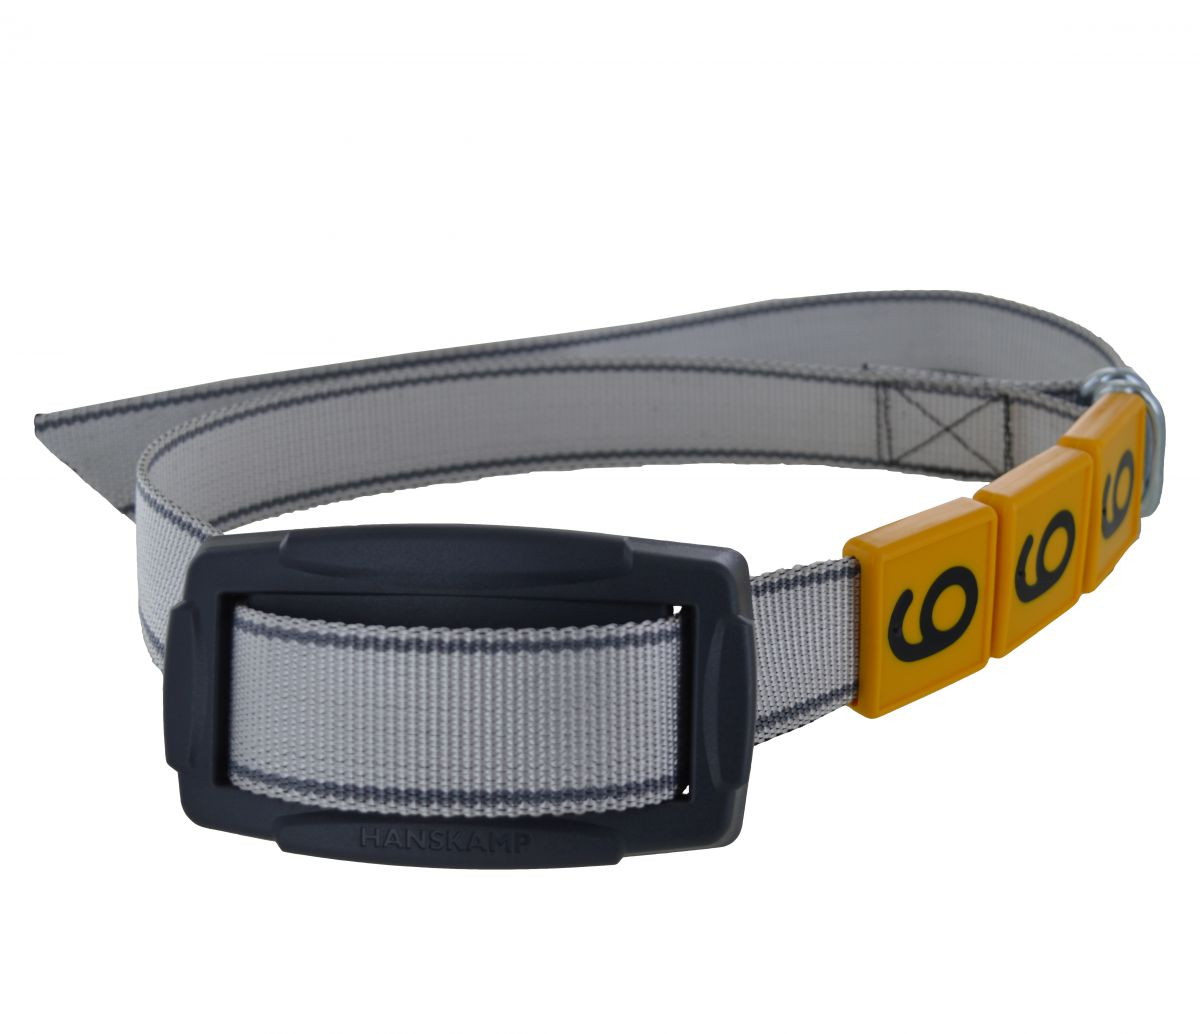 set with spidertag neck strap and id numbers for 120 animals no 1 120